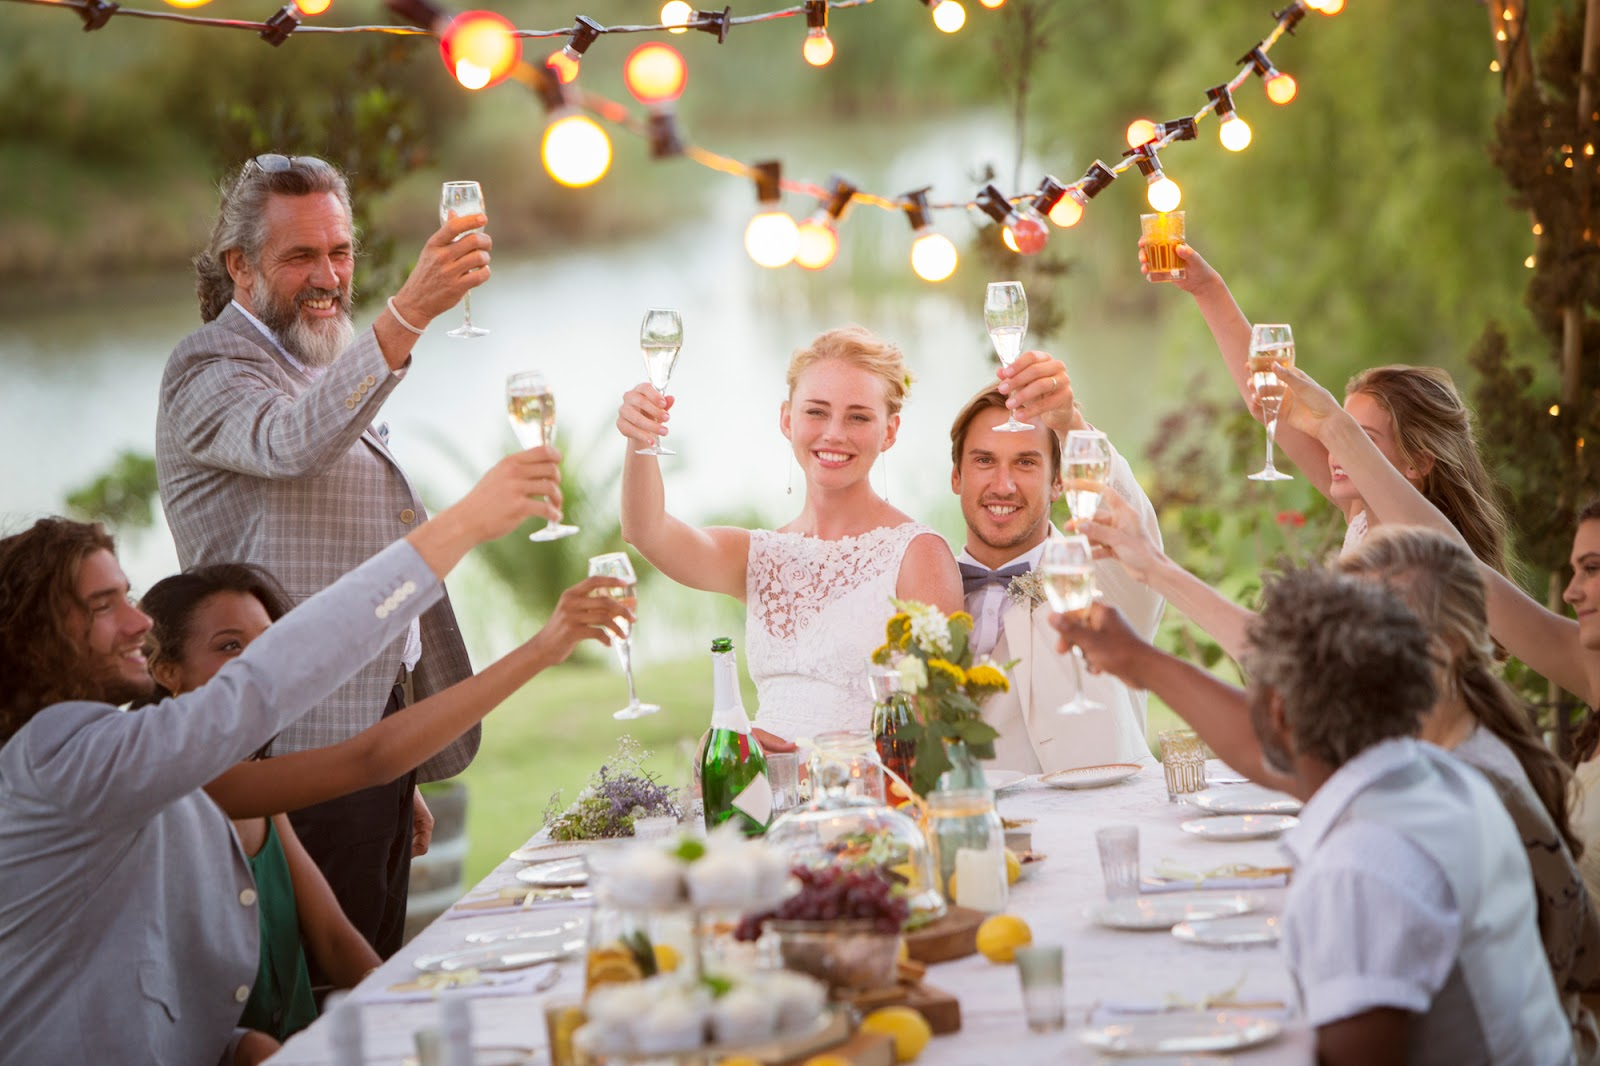 What Kind Of Wedding You Should Have Based On Your Zodiac Sign